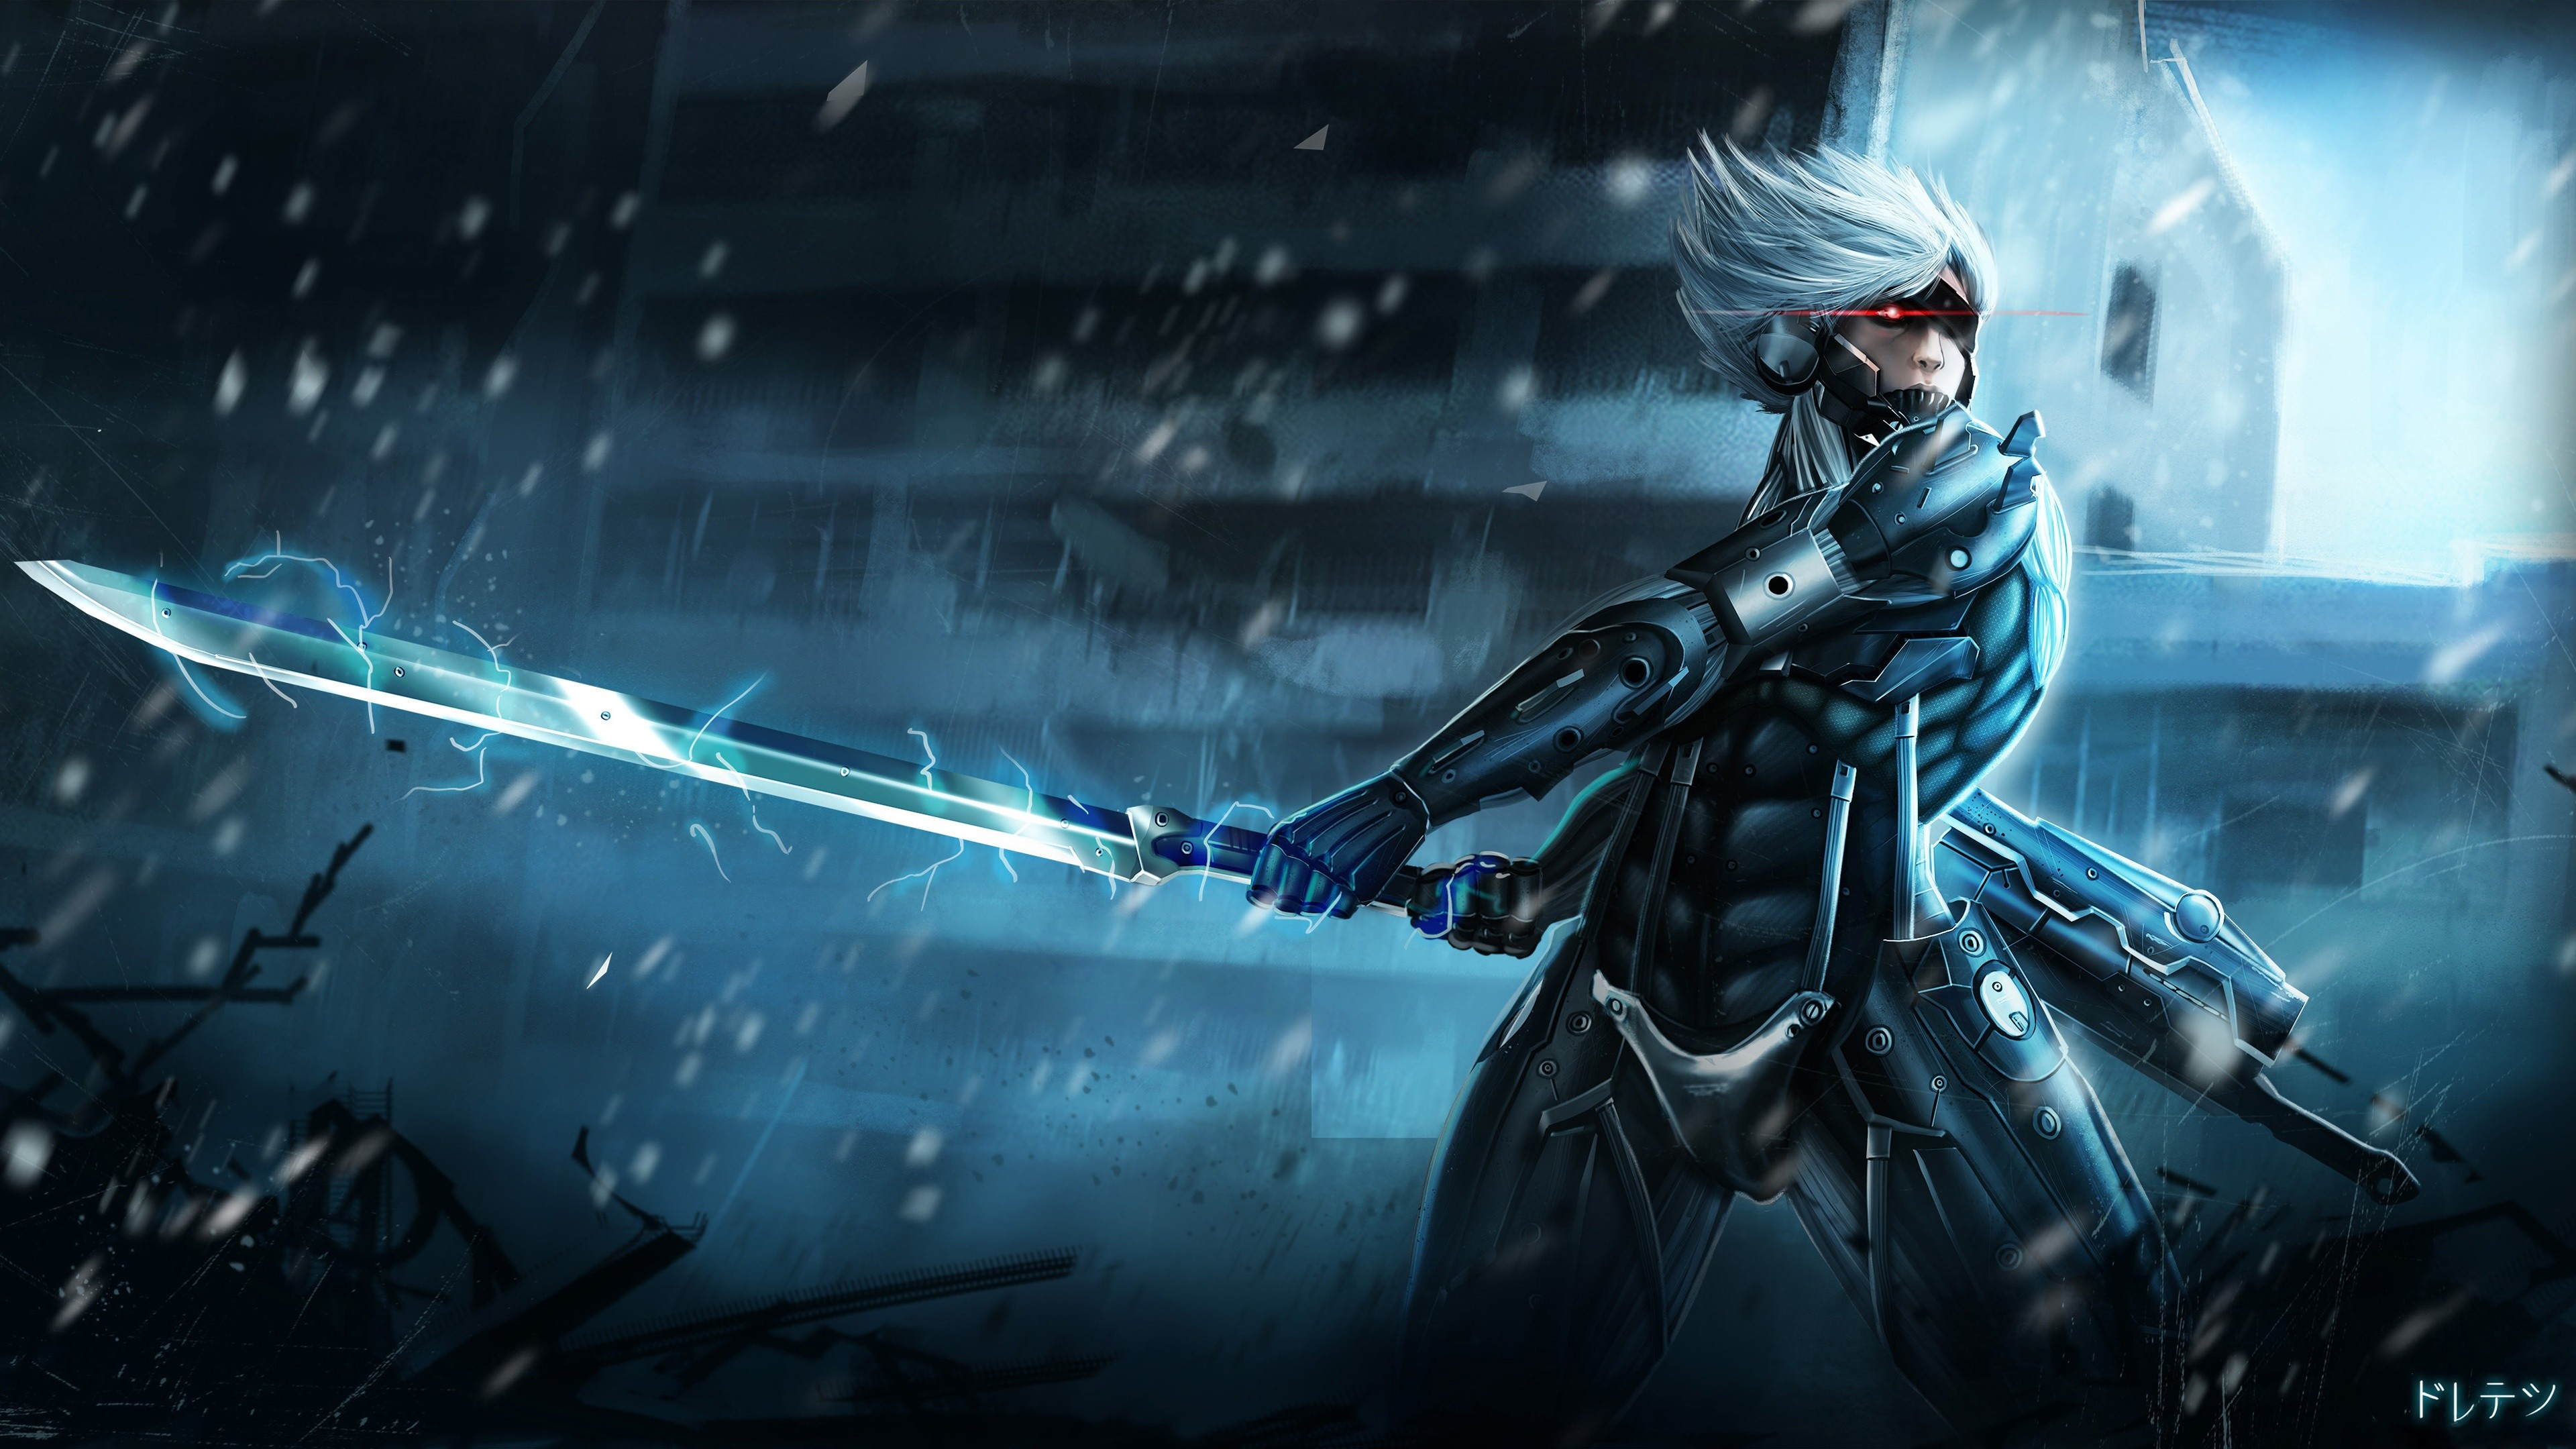 3840x2160 52 Metal Gear Rising: Revengeance HD Wallpapers | Backgrounds